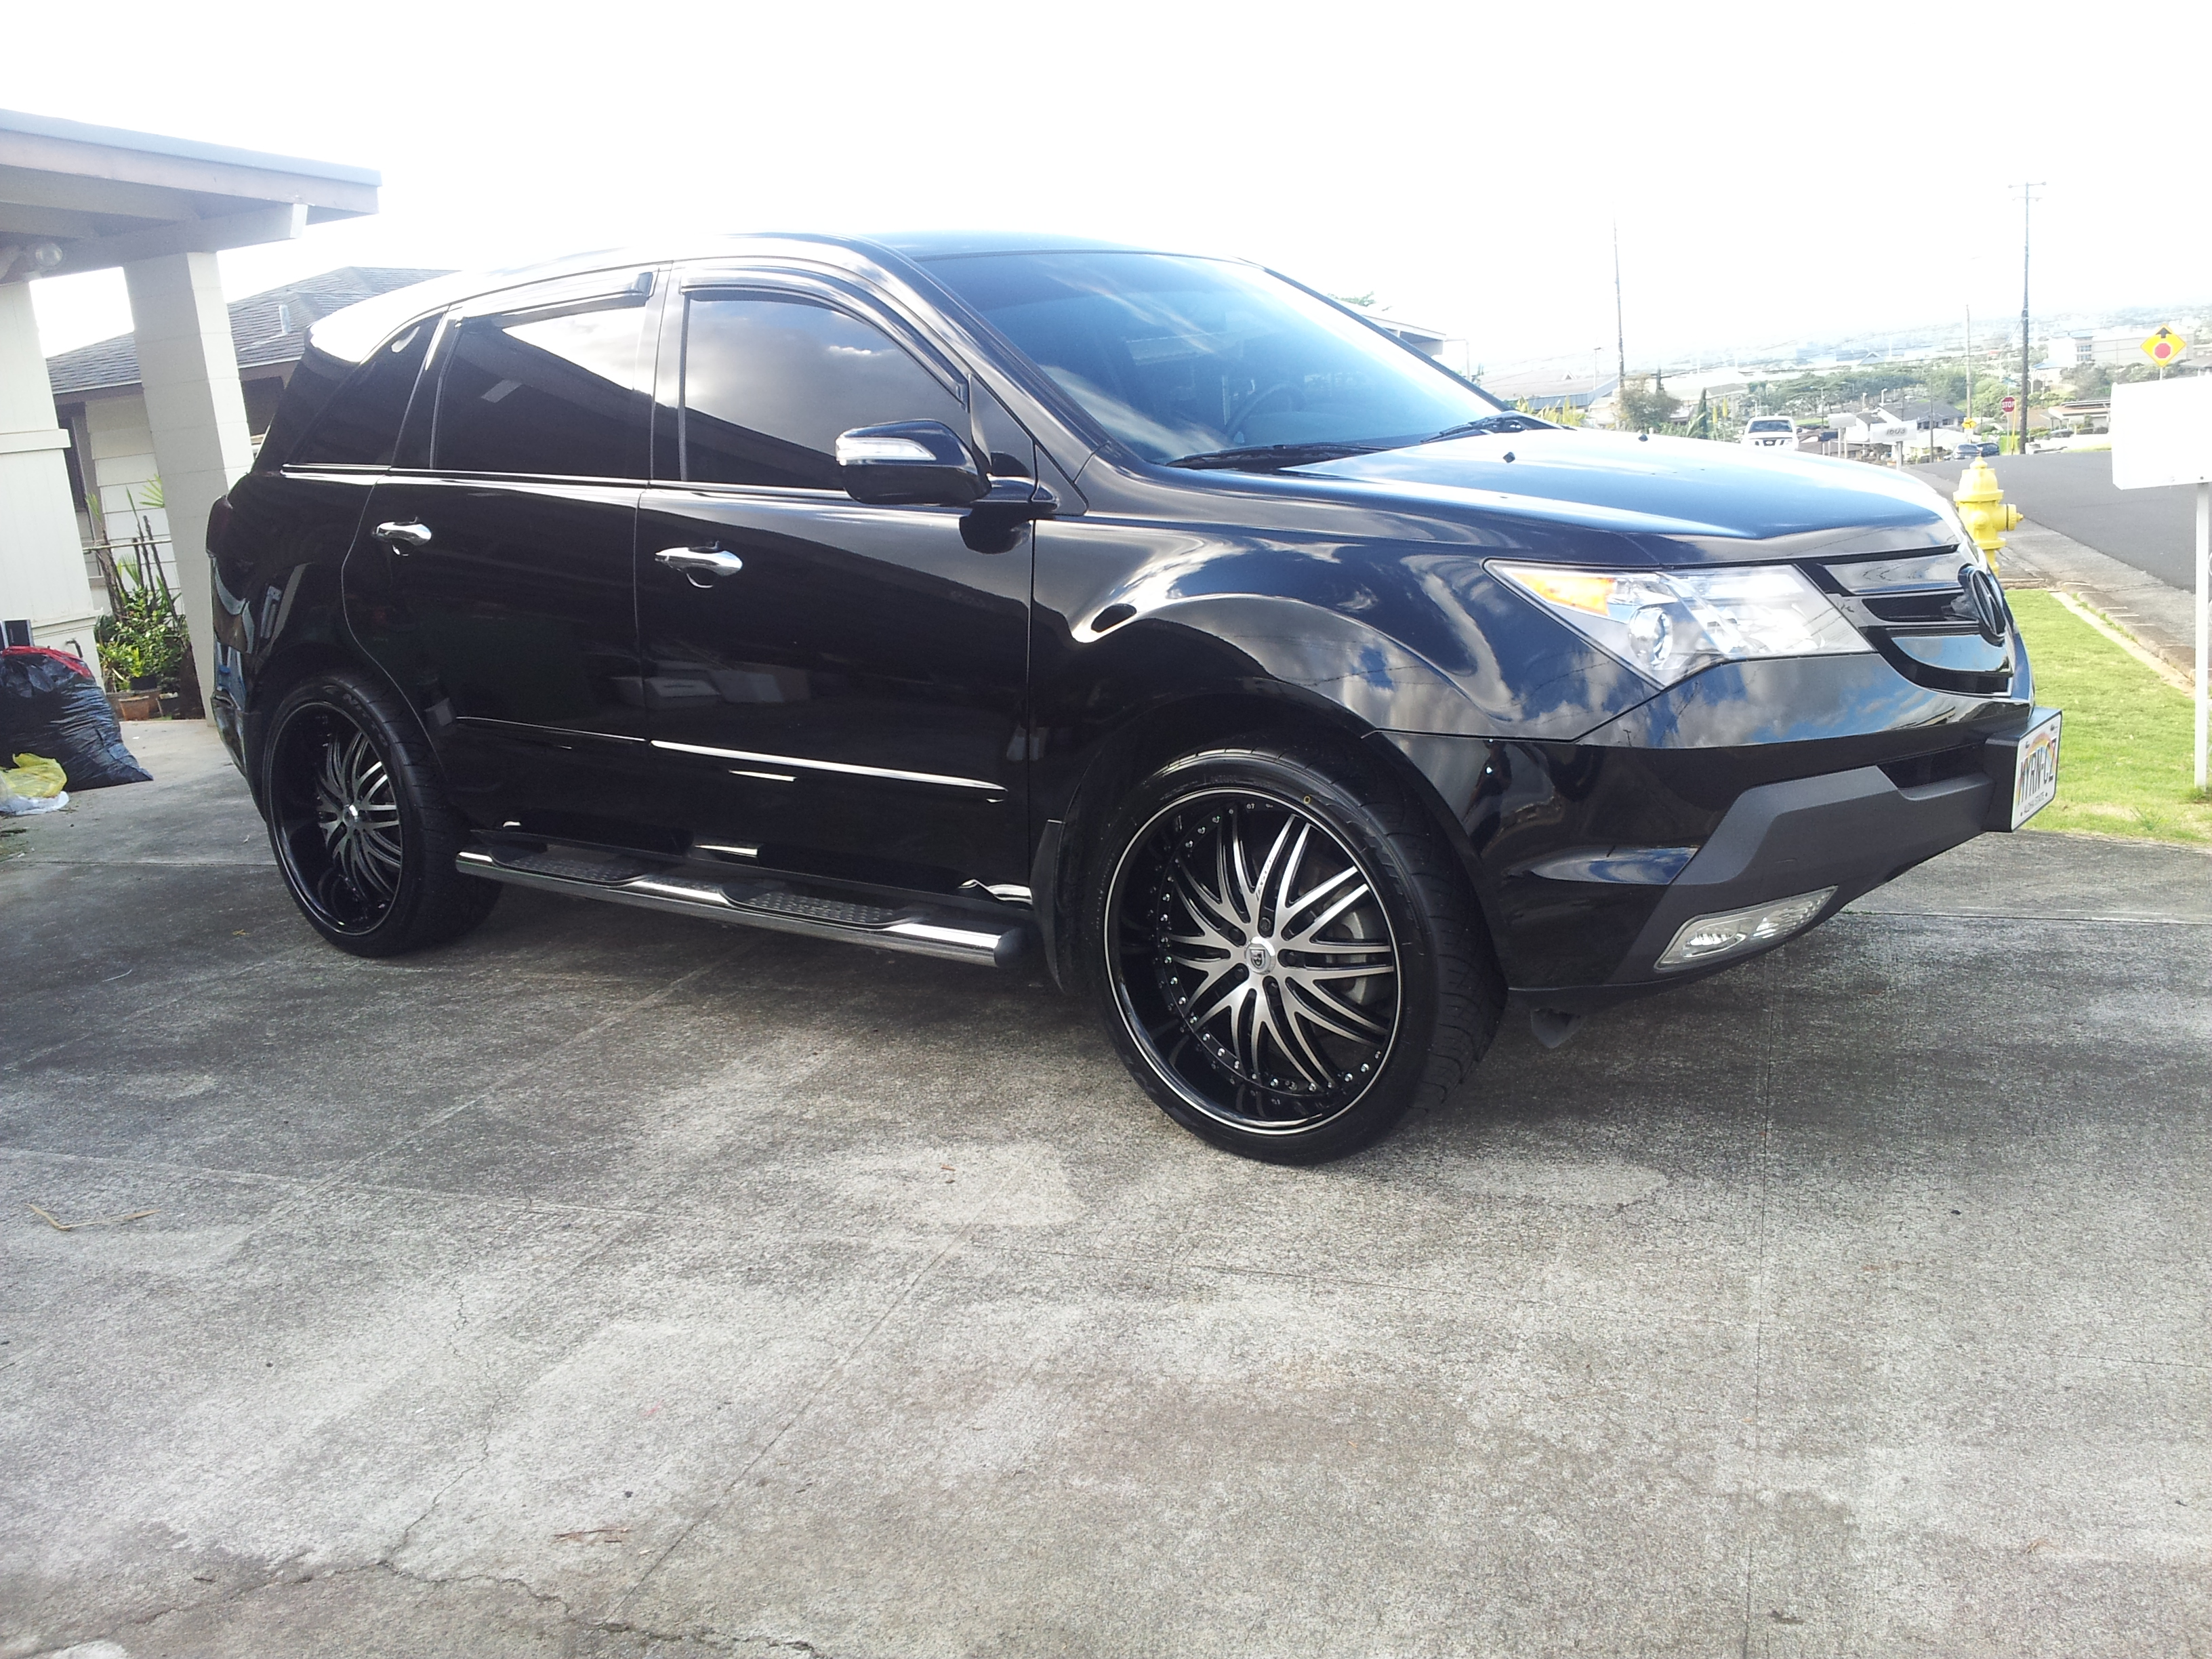 Pics Of Nd Generation MDX With Aftermarket Rims Page Acura - Rt 22 acura